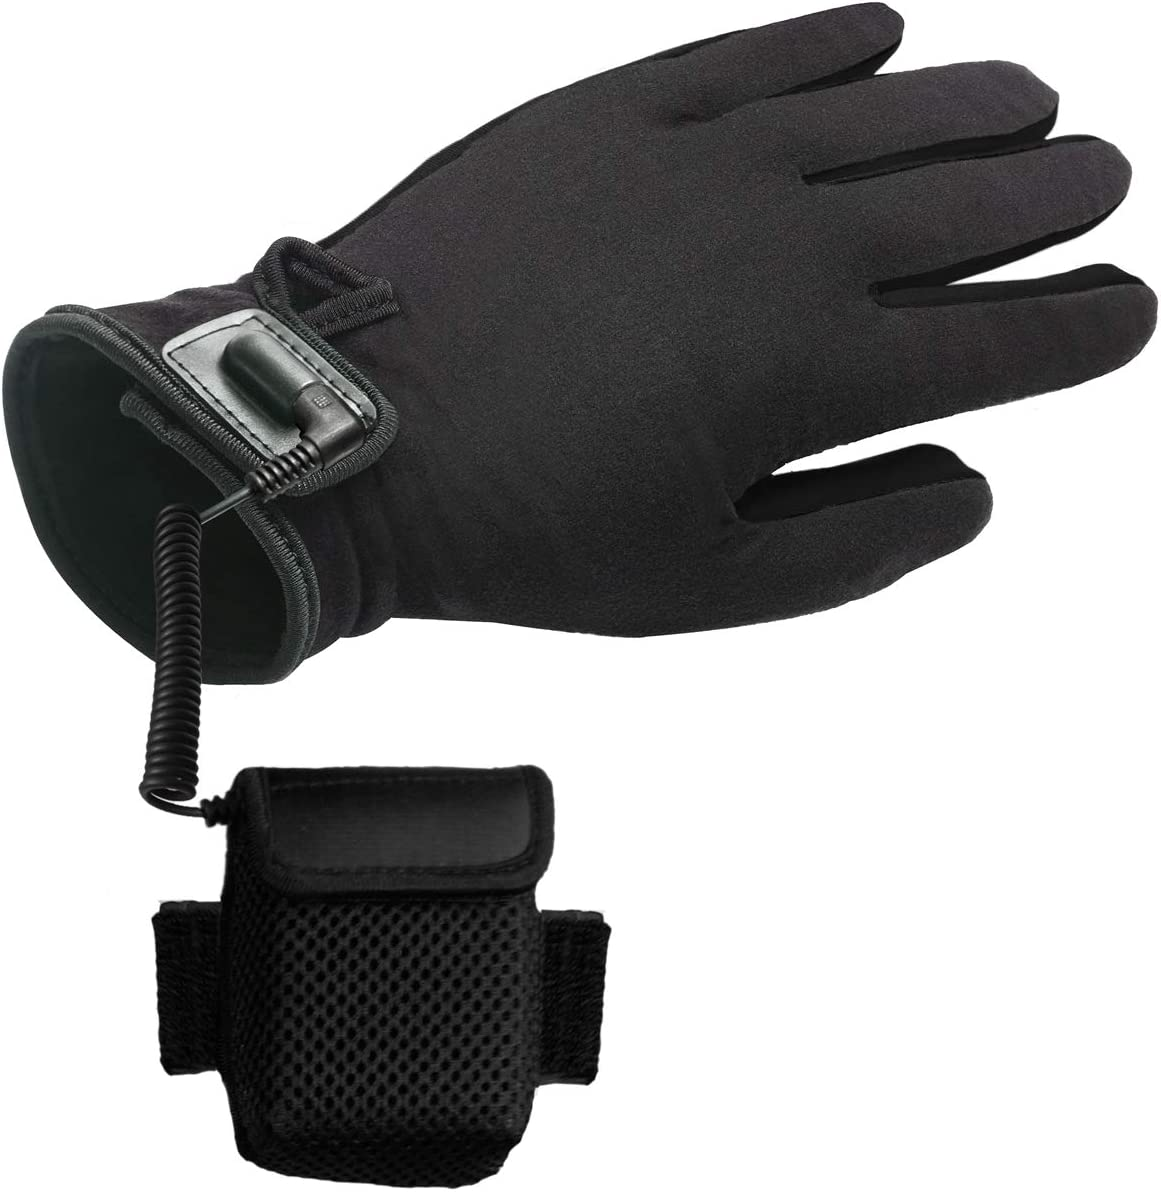 Warmawear Battery Heated Deluxe Glove Liners Small